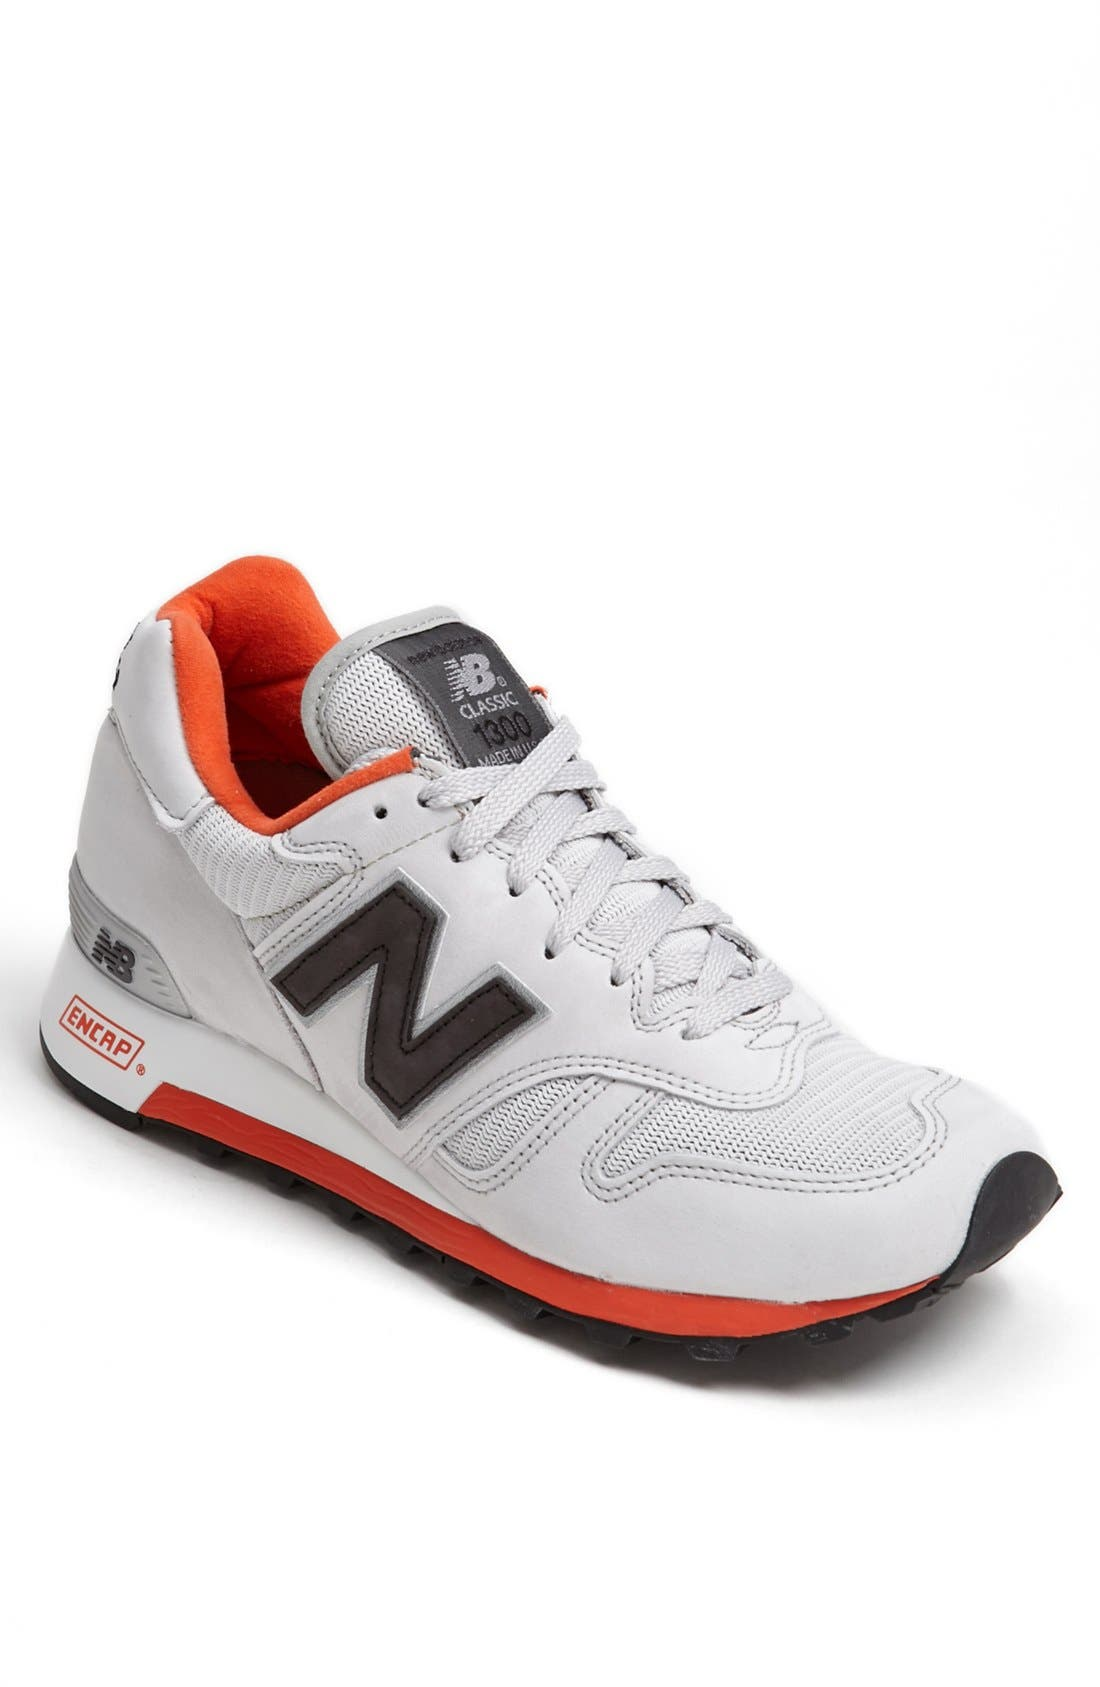 '1300 Classic' Sneaker,                             Main thumbnail 1, color,                             Grey/ Red